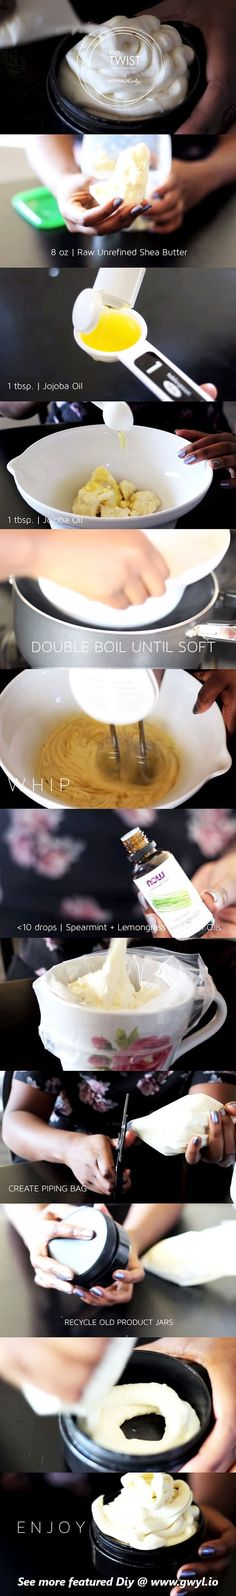 DIY Whipped Shea Butter made with pure oils and essential oils, is a great way of reviving moisture on your tired and dry skin, especially in cold weathers. See video and written instructions here==> | Lucious DIY Whipped Shea Butter For Hair & Skin | http://gwyl.io/diy-whipped-shea-butter/